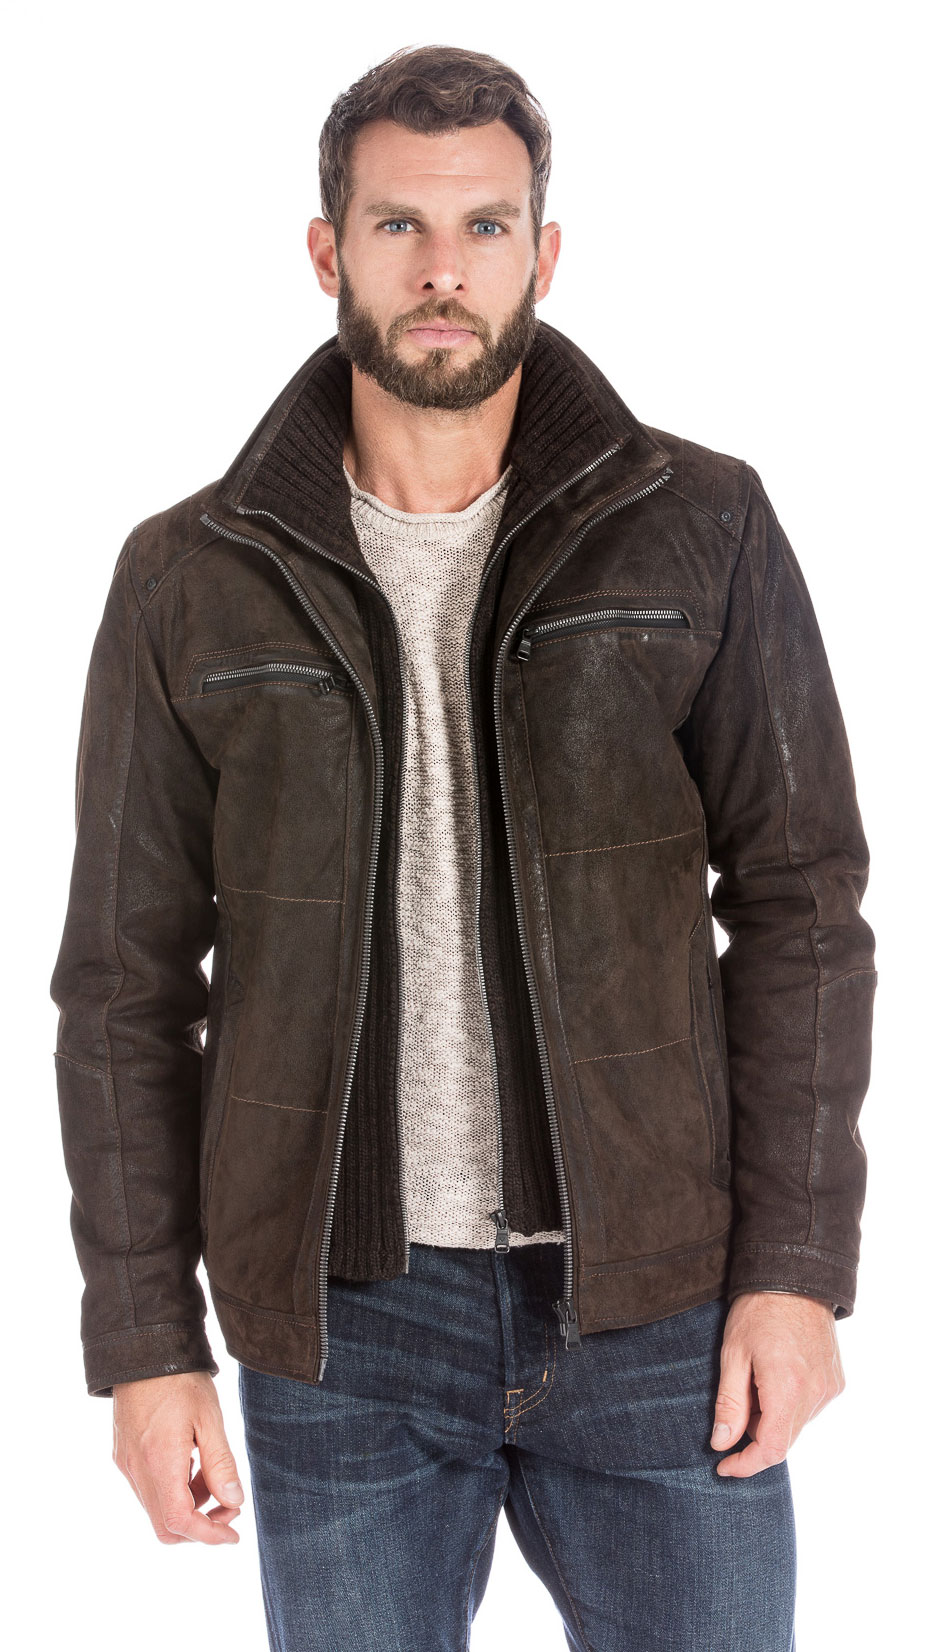 best authentic 31b0b 83654 Giacca in pelle uomo marrone